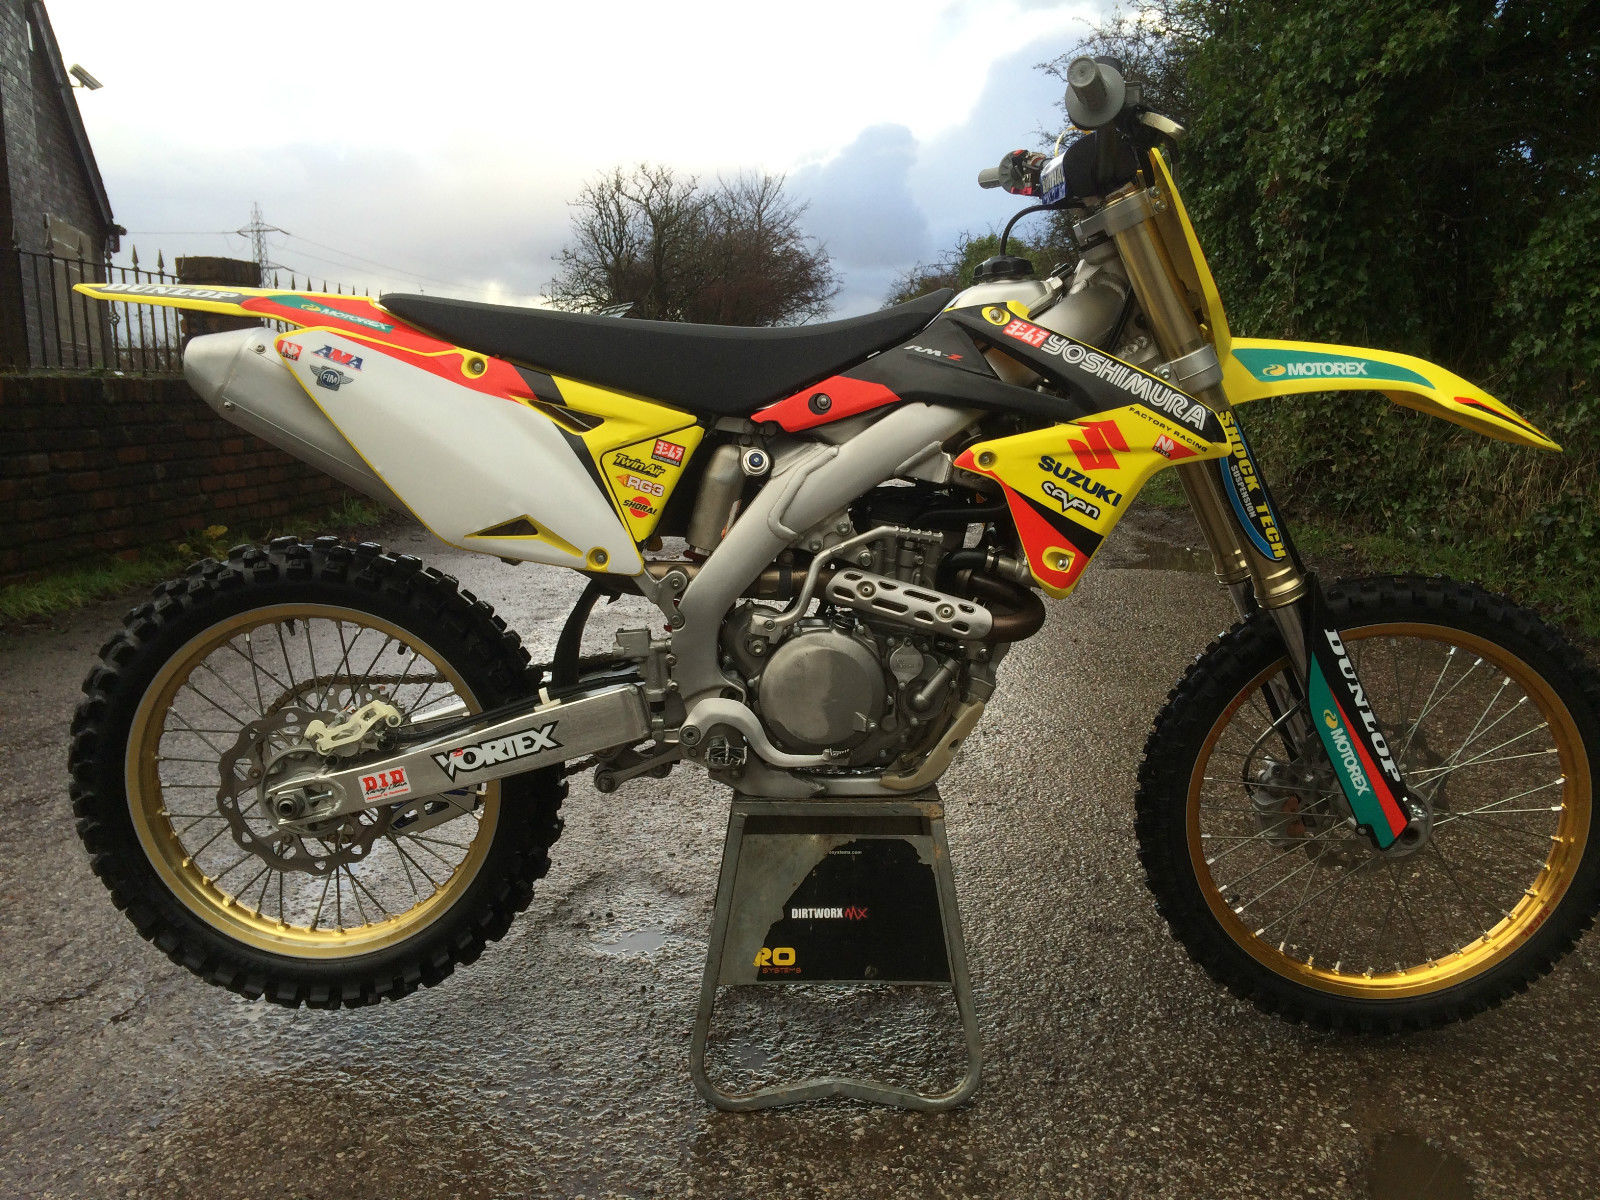 suzuki rmz450 2010 efi 4 stroke motocross bike mint condition mx. Black Bedroom Furniture Sets. Home Design Ideas